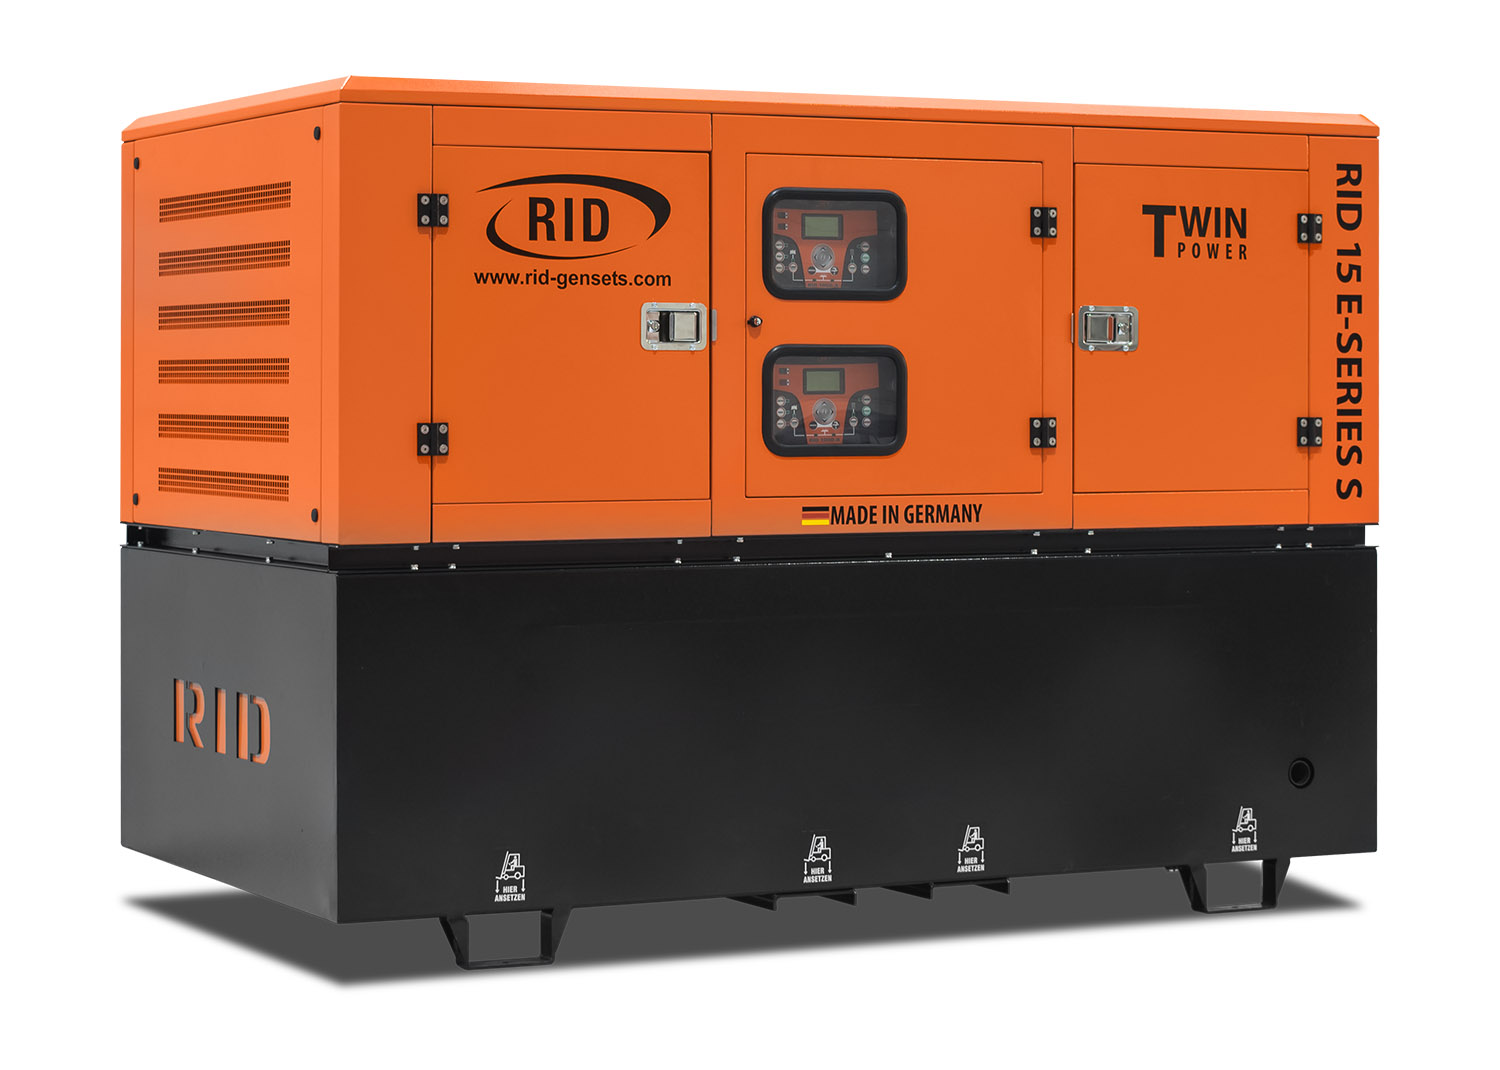 RID 15-SERIES-S TWIN POWER iso